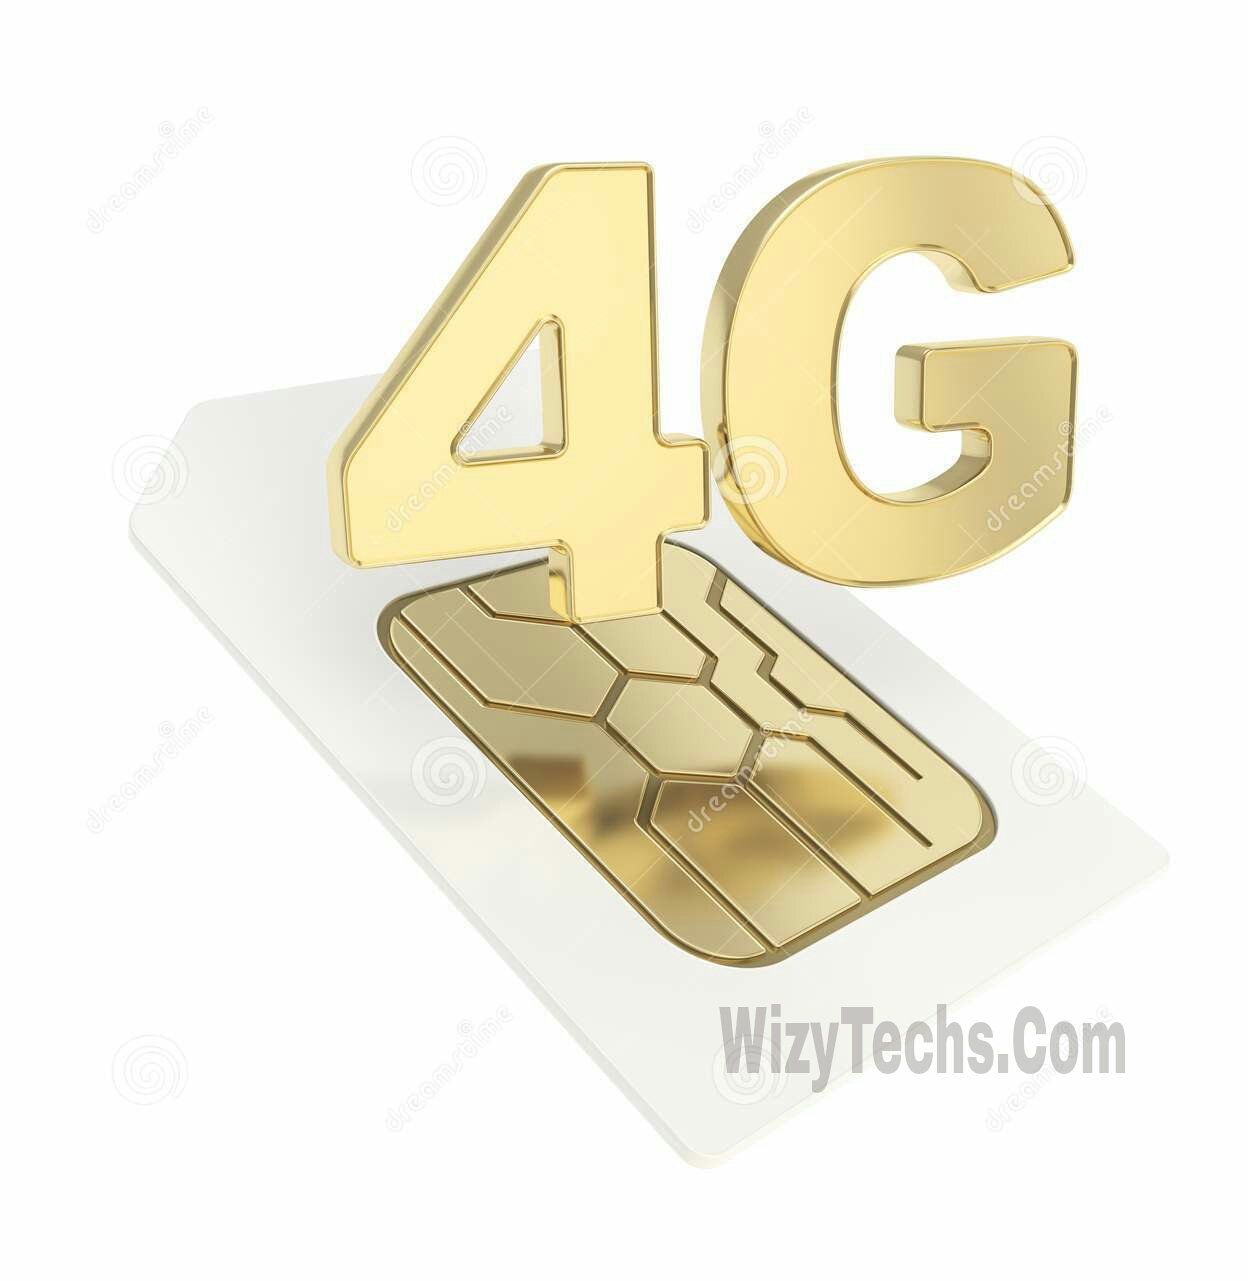 Does 4G depend on Sims